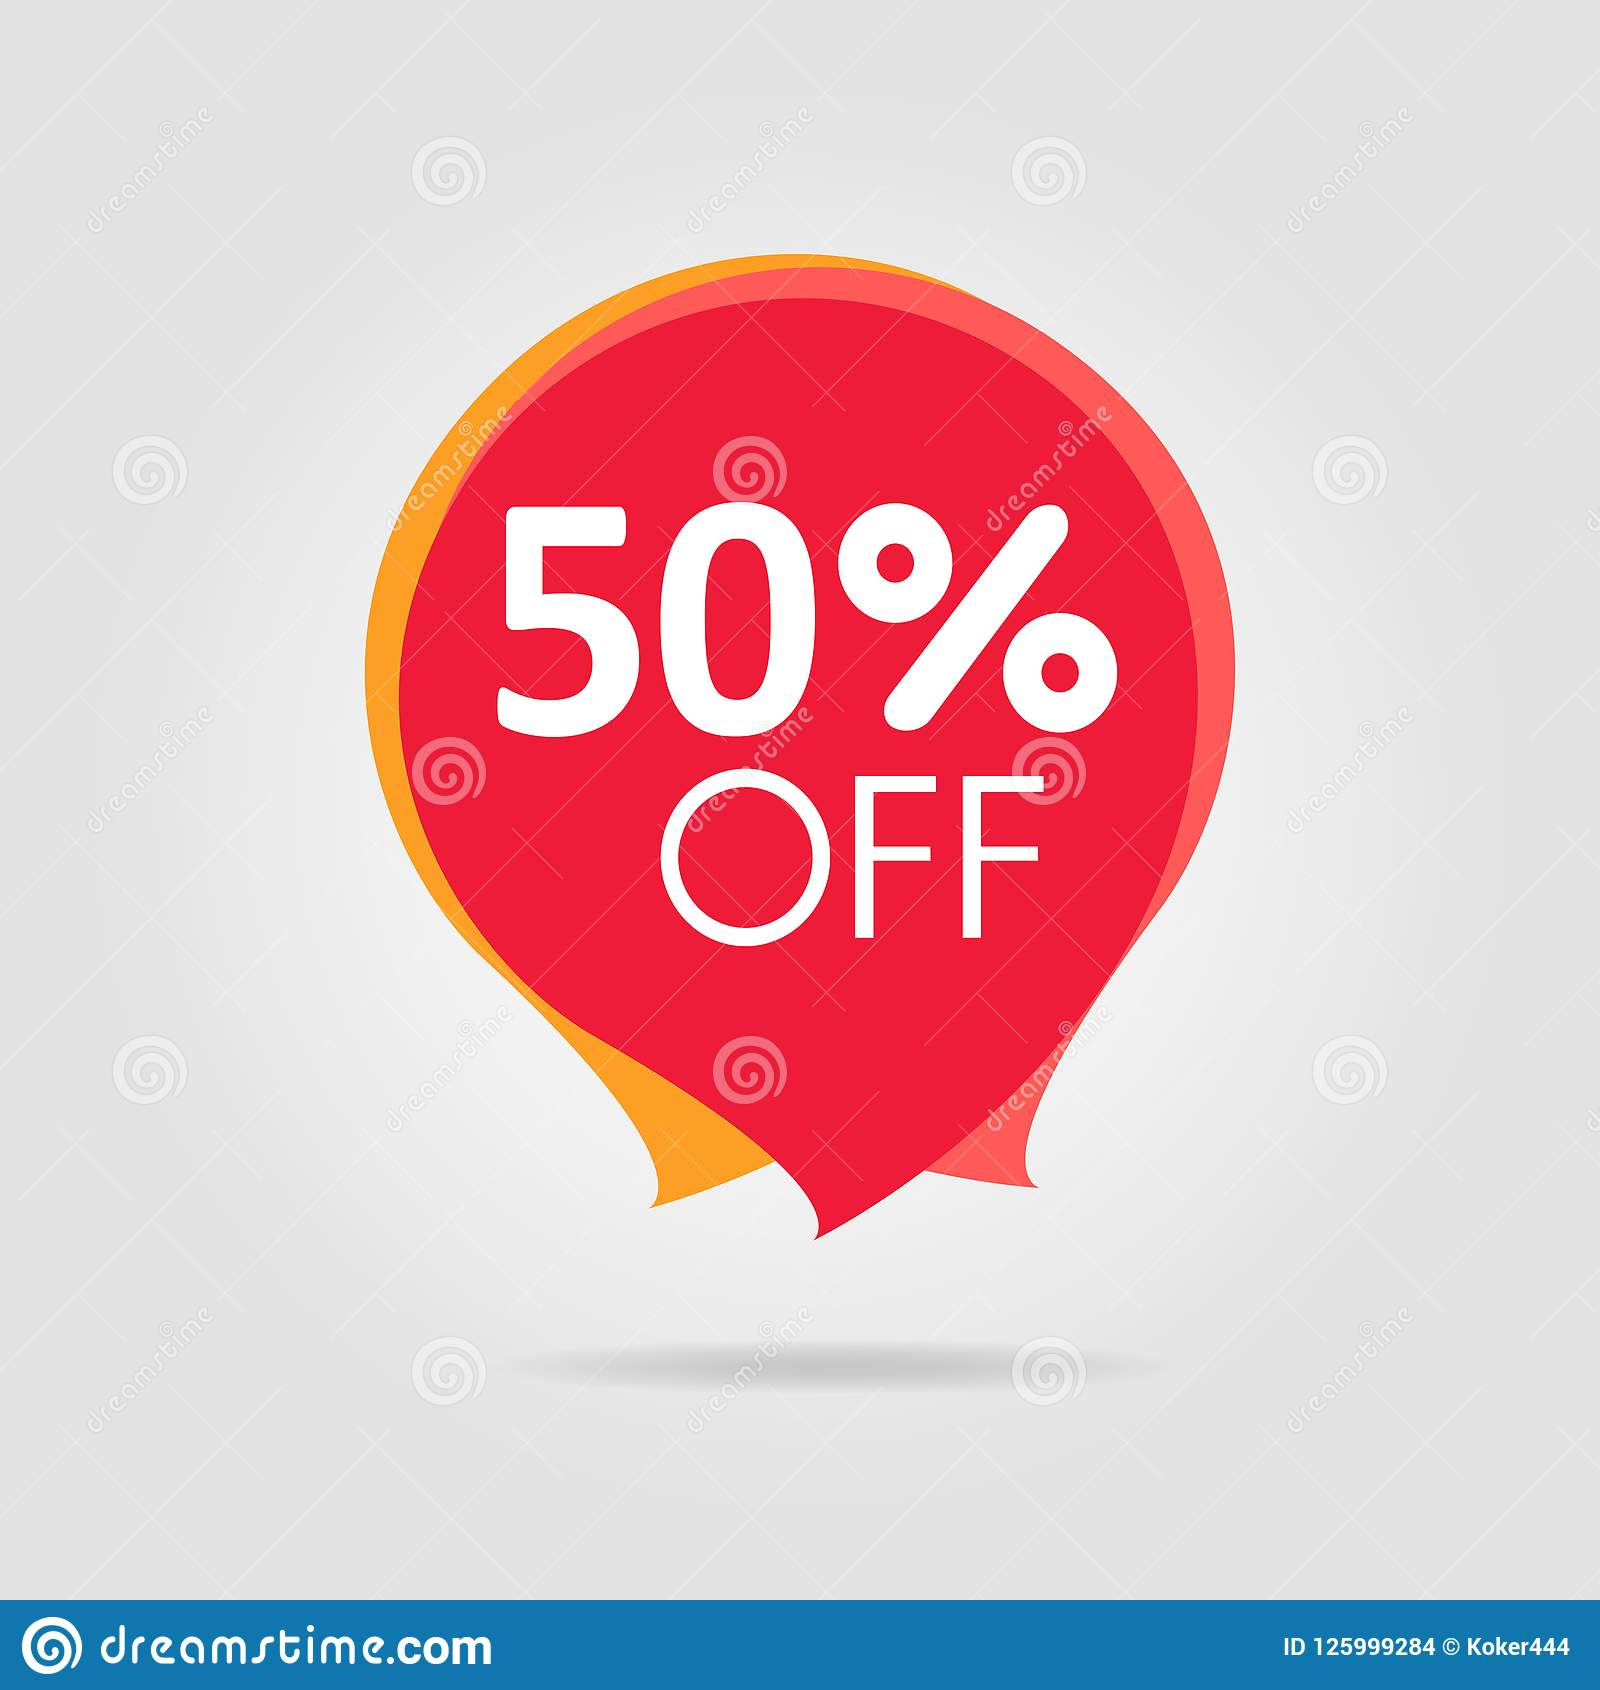 Discount offer price sticker, symbol for advertising campaign in retail